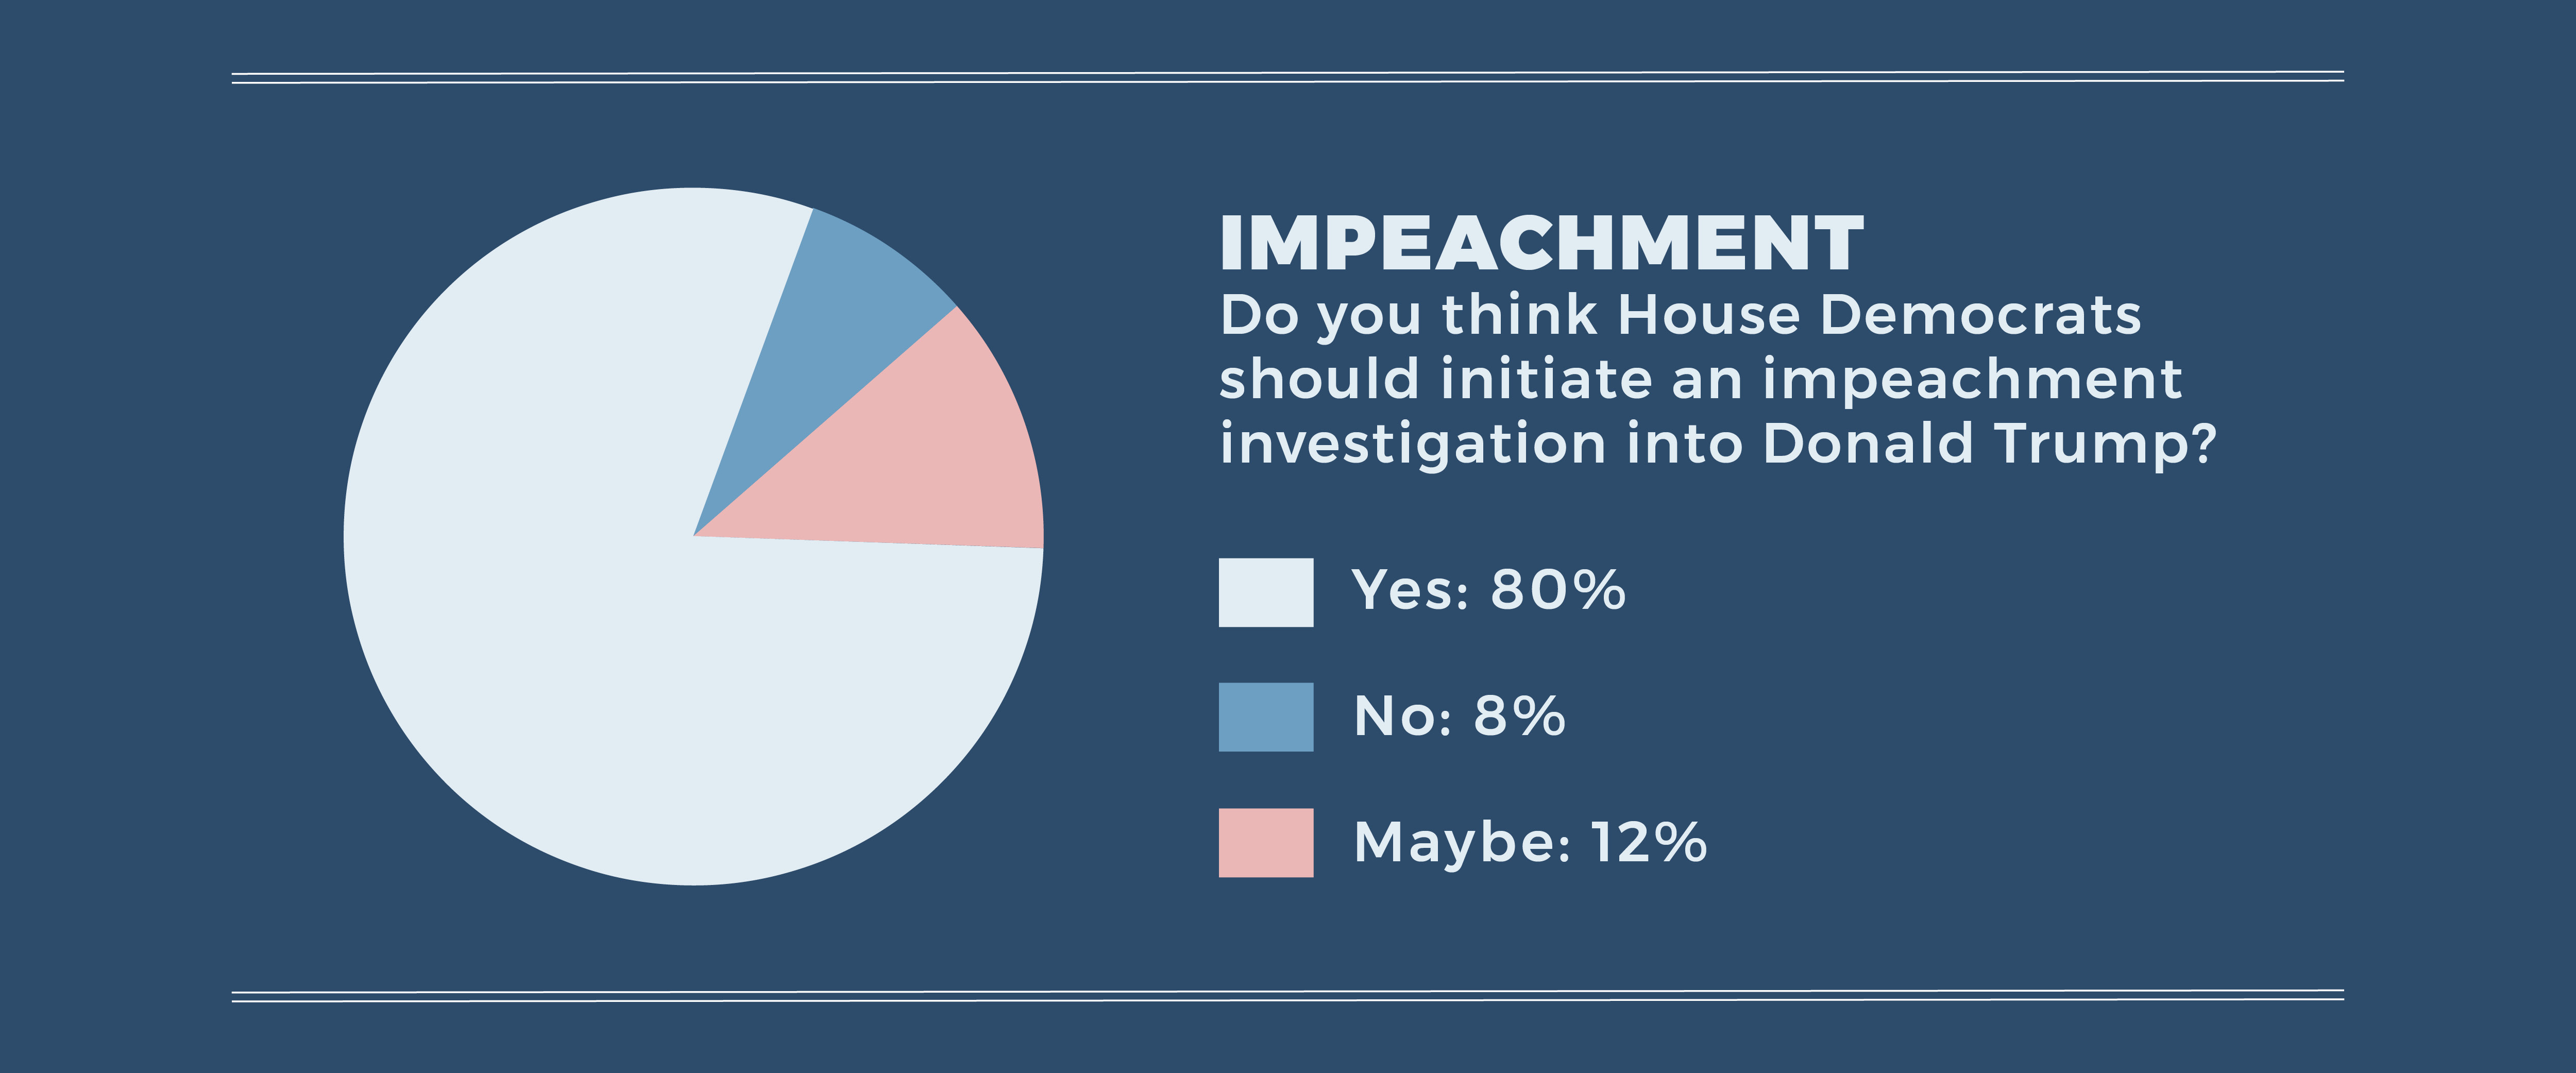 "In response to the question ""Do you think House Democrats should initiate an impeachment investigation into Donald Trump?"" 80% of folks responded ""yes"", 8% of folks responded ""No"", and 12% responded ""maybe""."